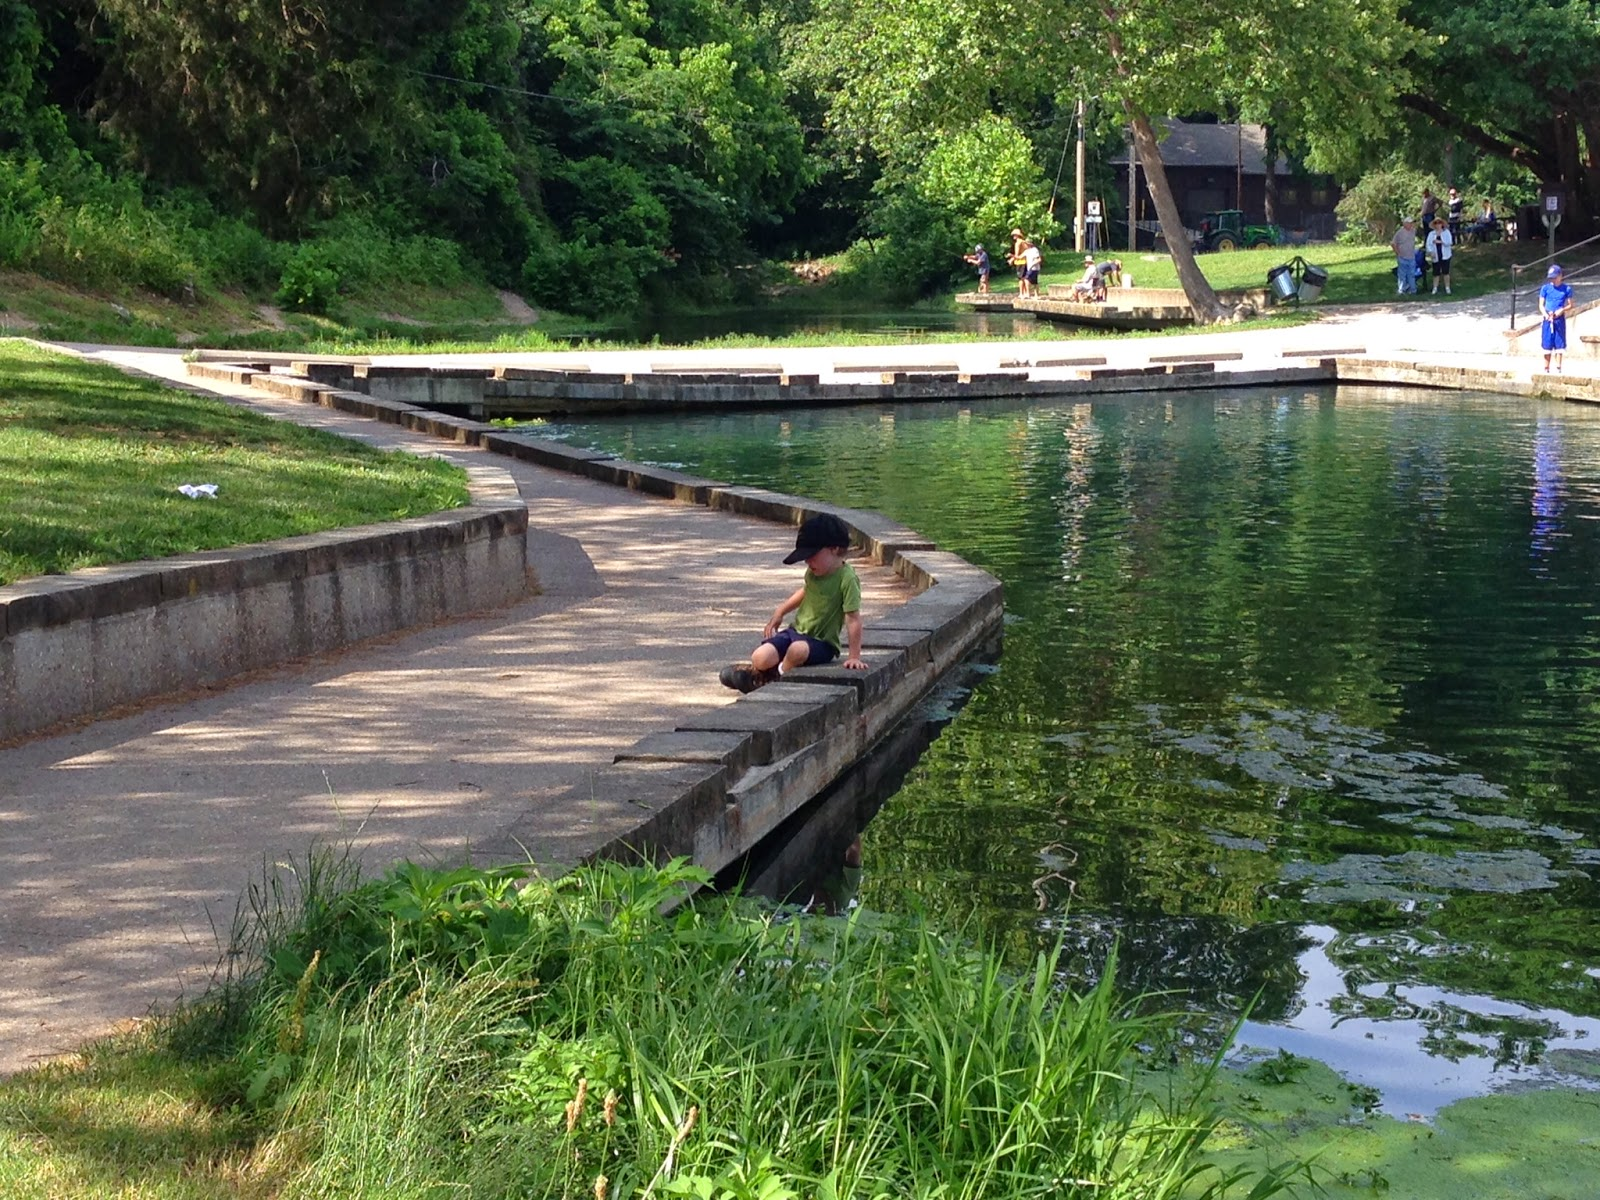 Ozark fly fishing june roaring river state park with desmond for Roaring river fish hatchery